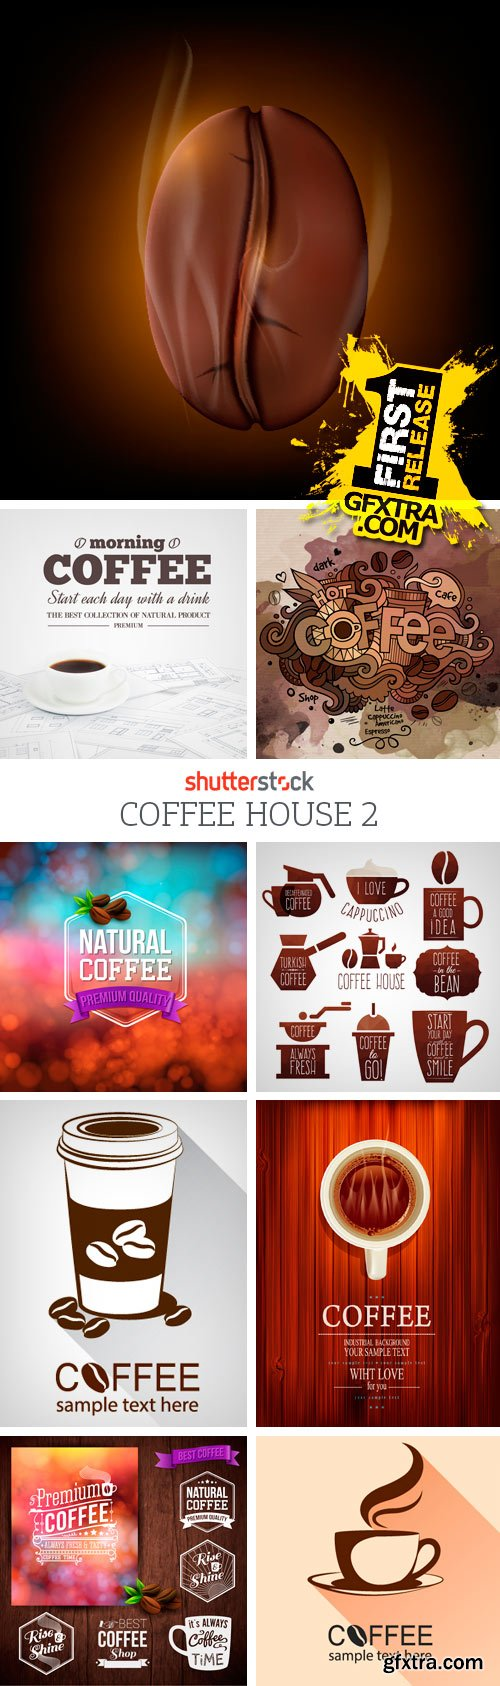 Amazing SS - Coffee House 2, 25xEPS